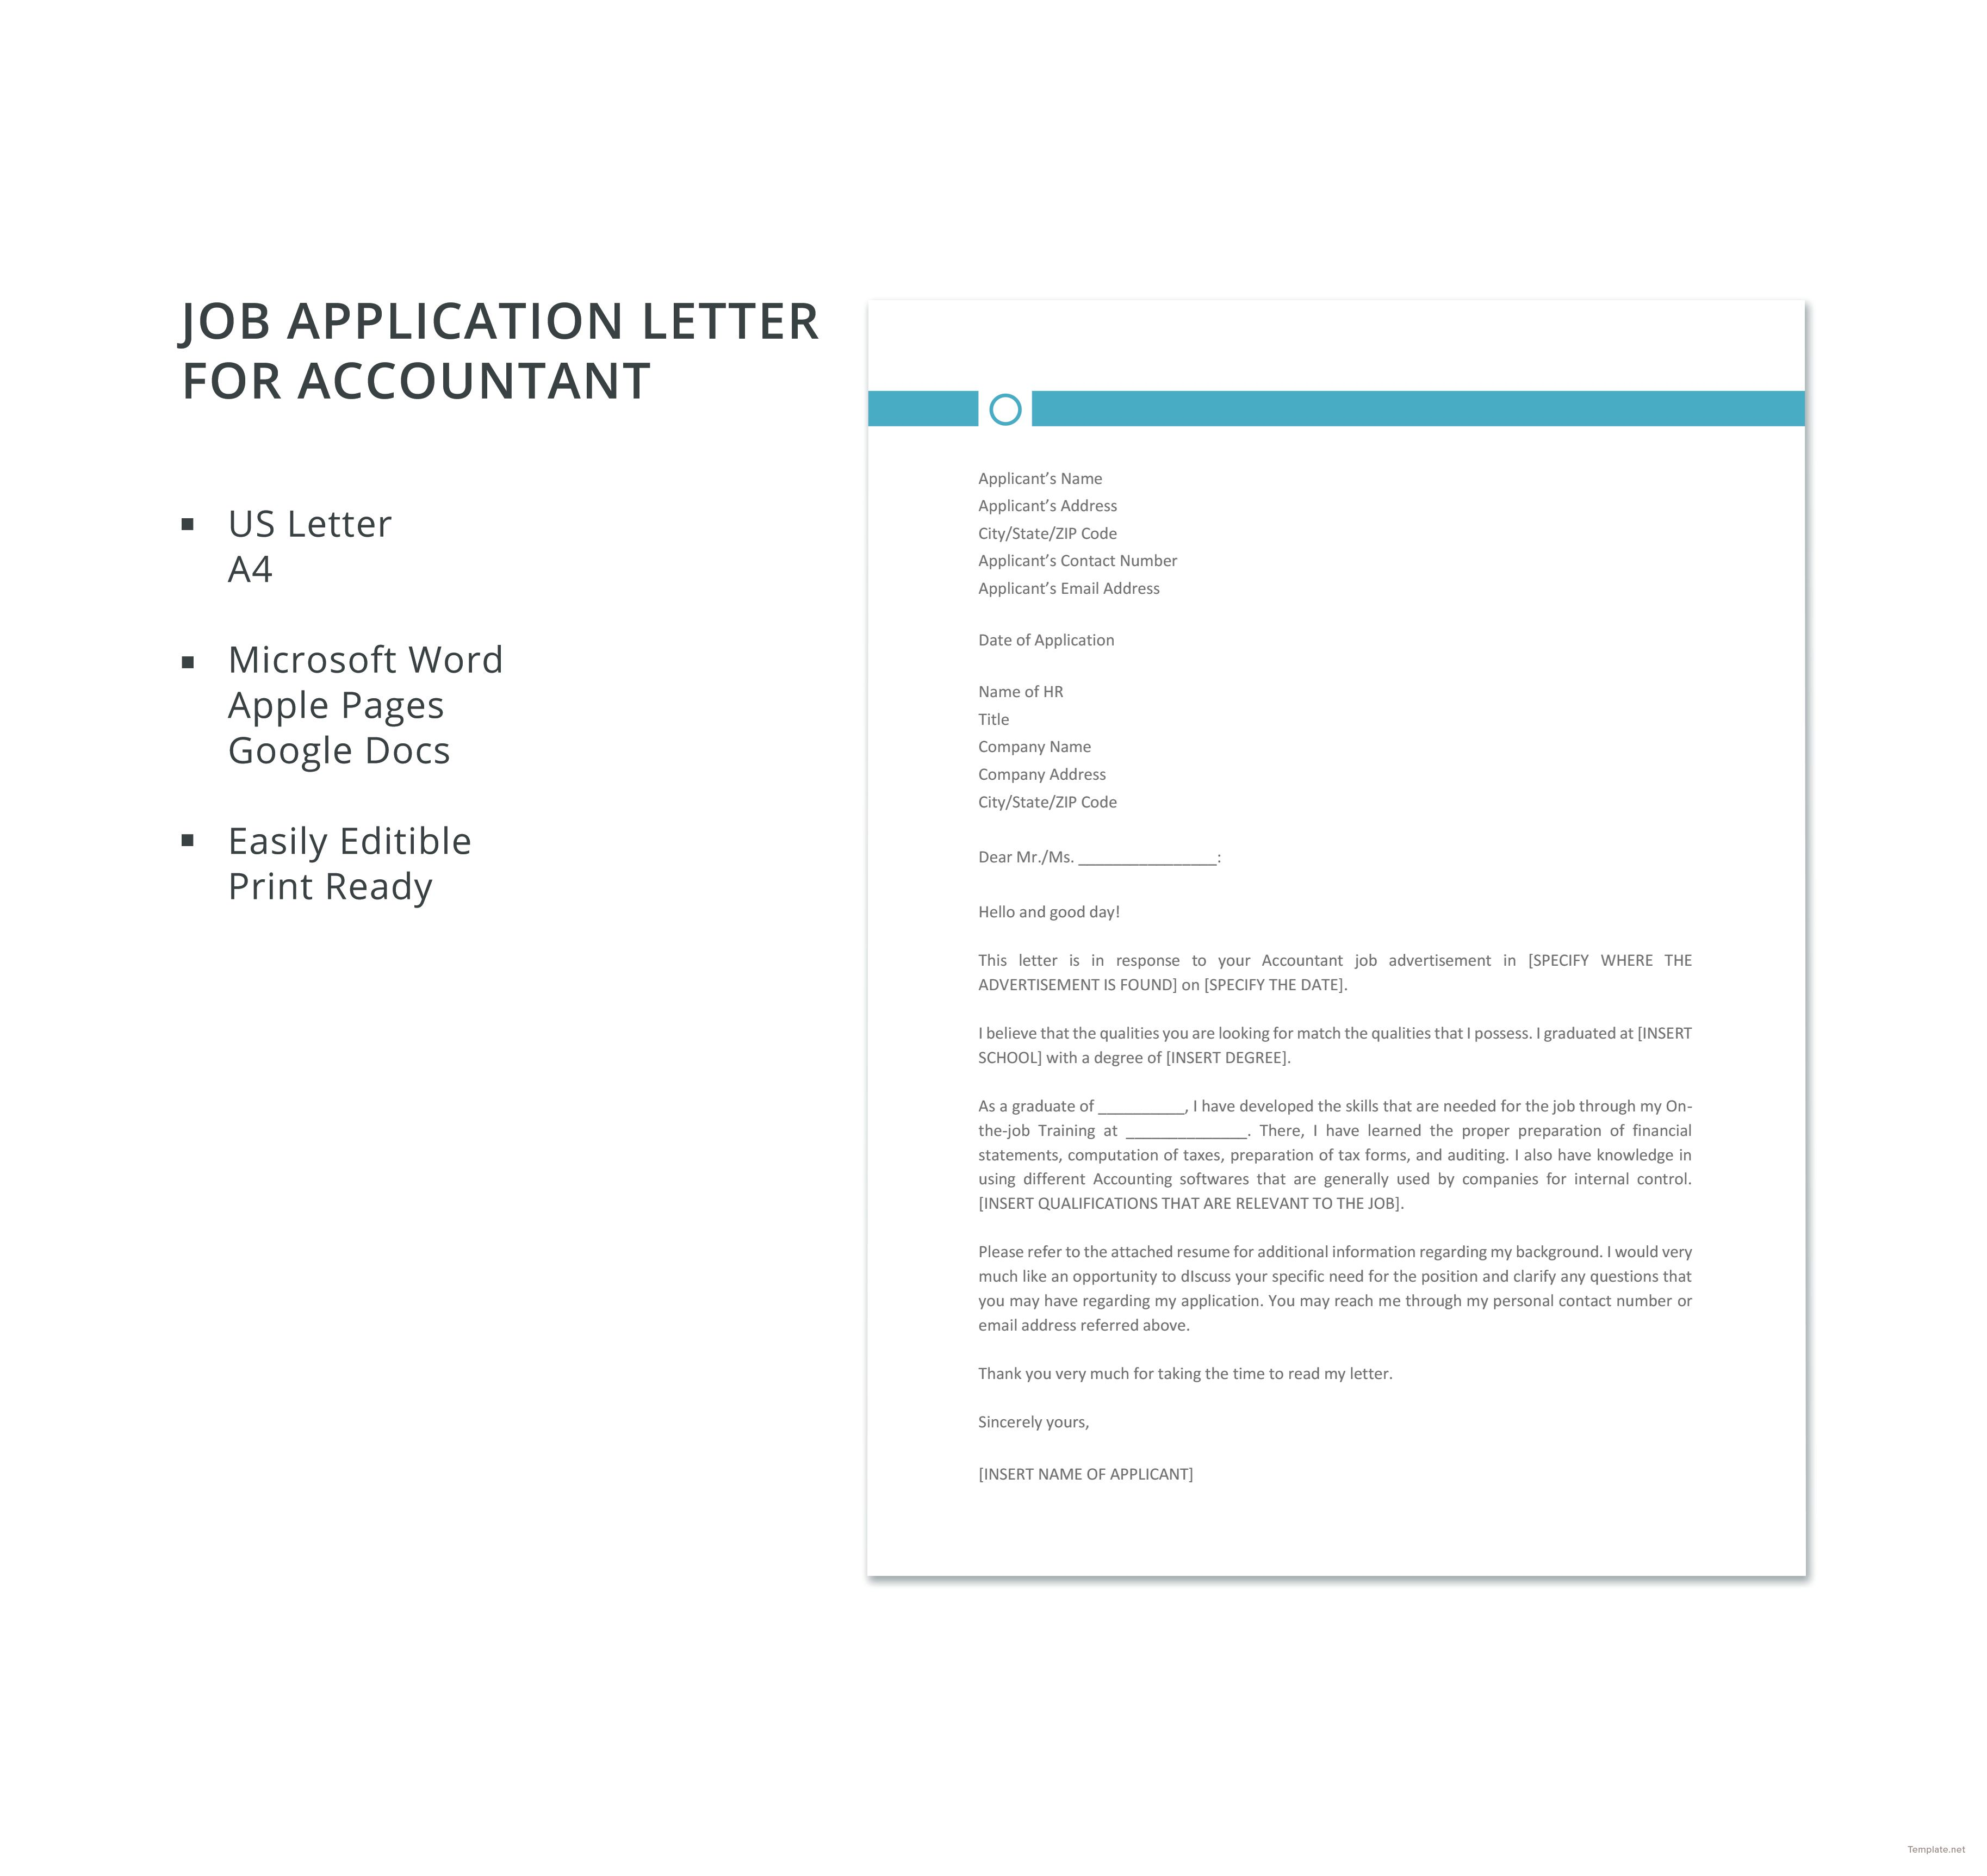 Free Job Application Letter Template For Accountant | Job ...